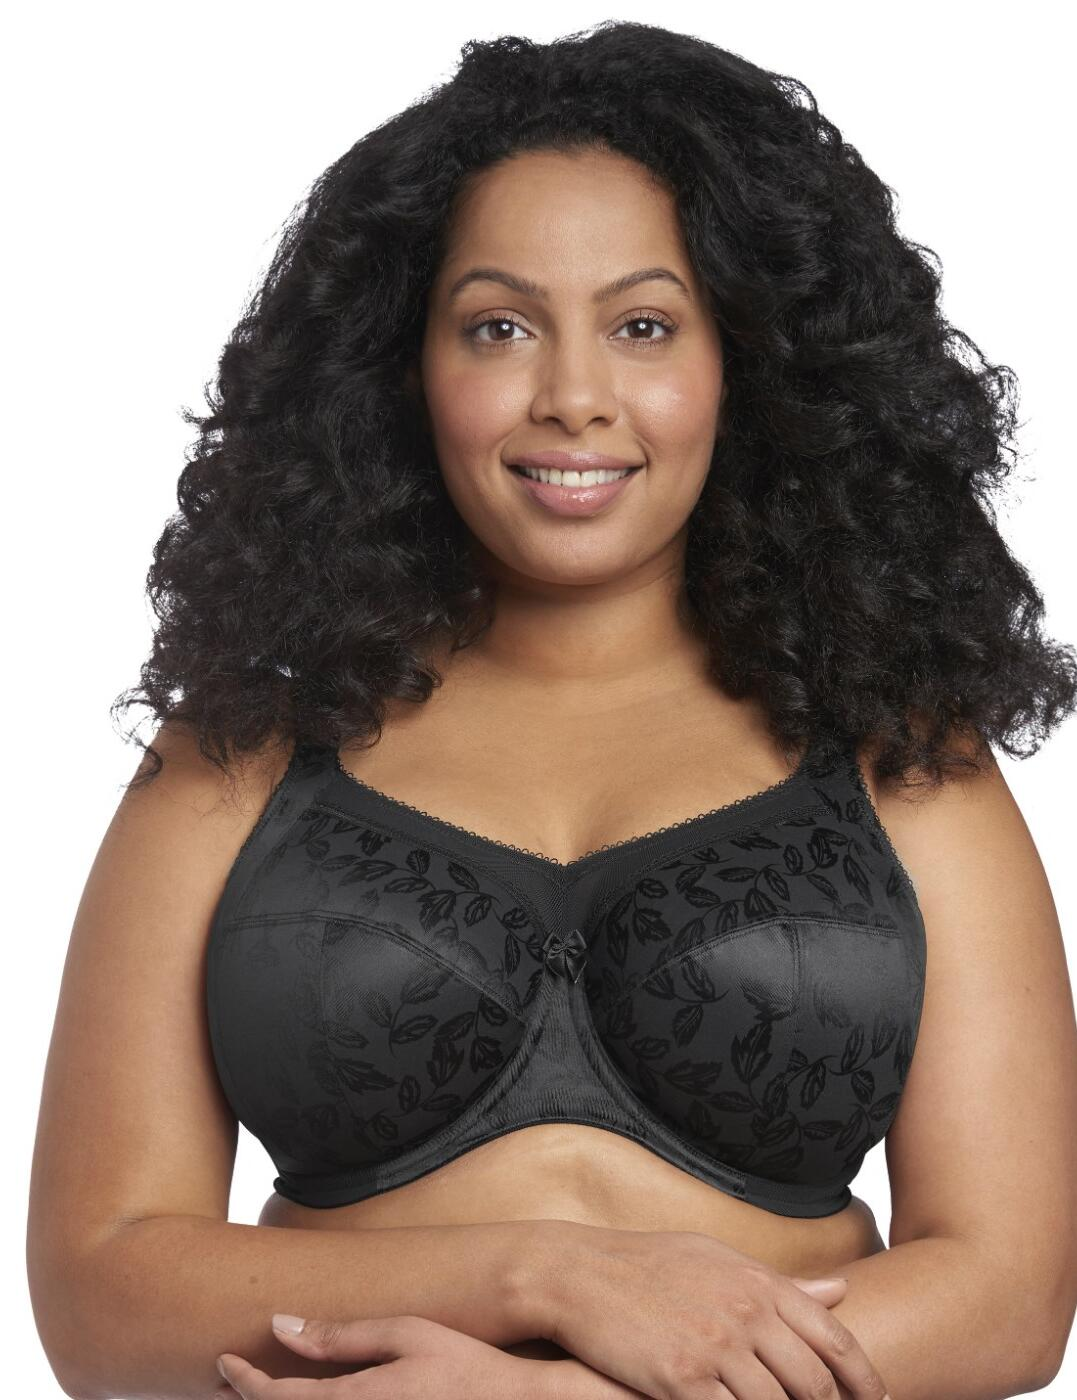 630a4519159 6651 Goddess Petra Underwired Full Cup Bra - GD6651 Black